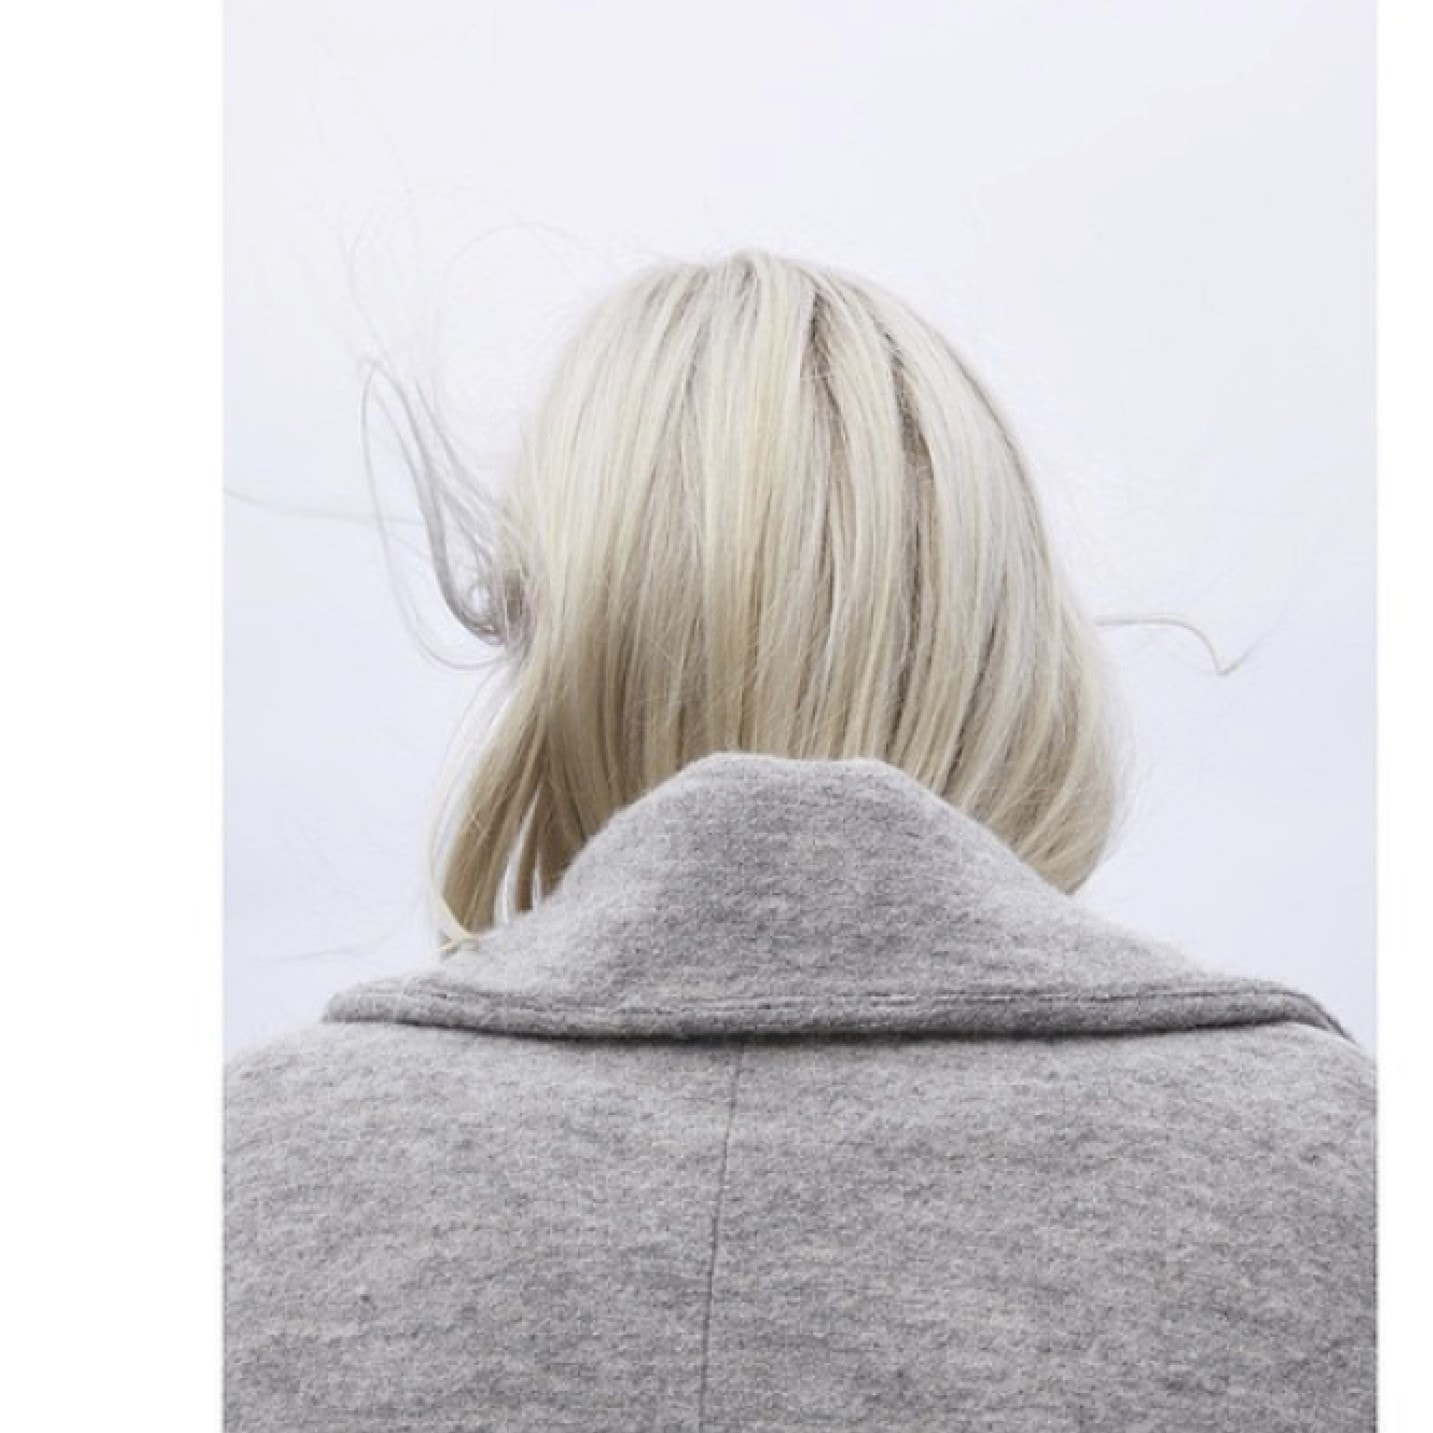 Platinum blonde hair tucked into gray coat